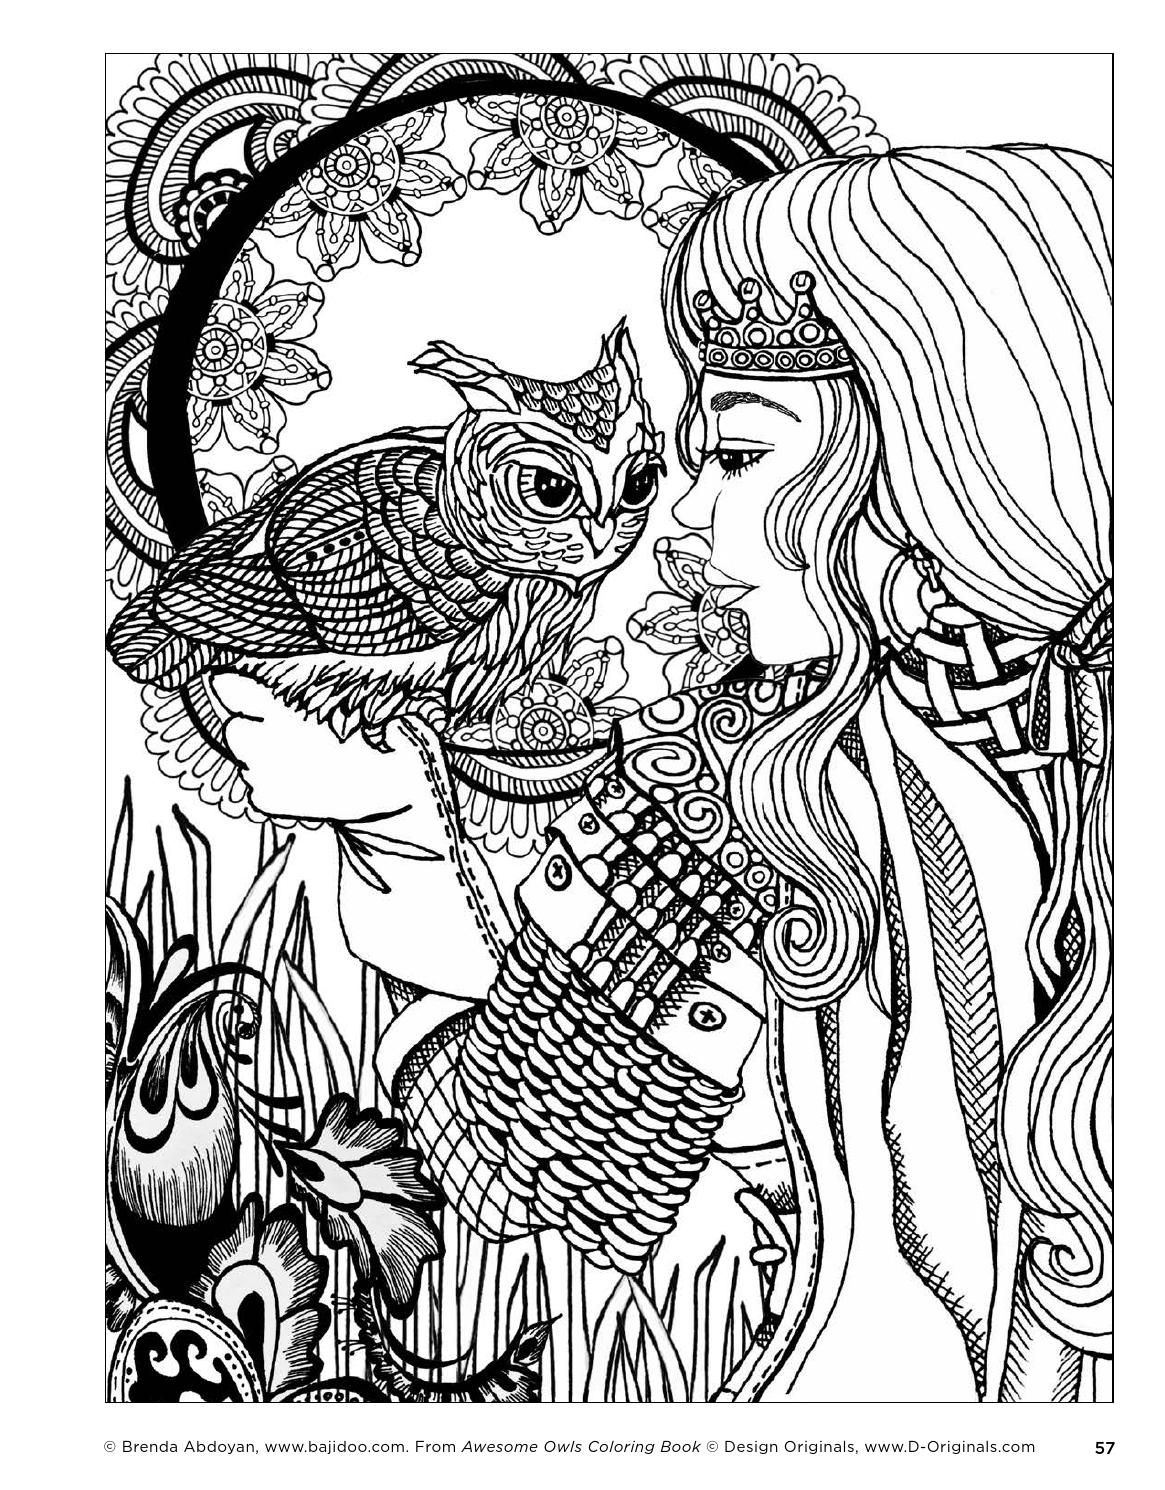 Awesome Owls Coloring Book Owl Coloring Pages Coloring Pages Abstract Coloring Pages